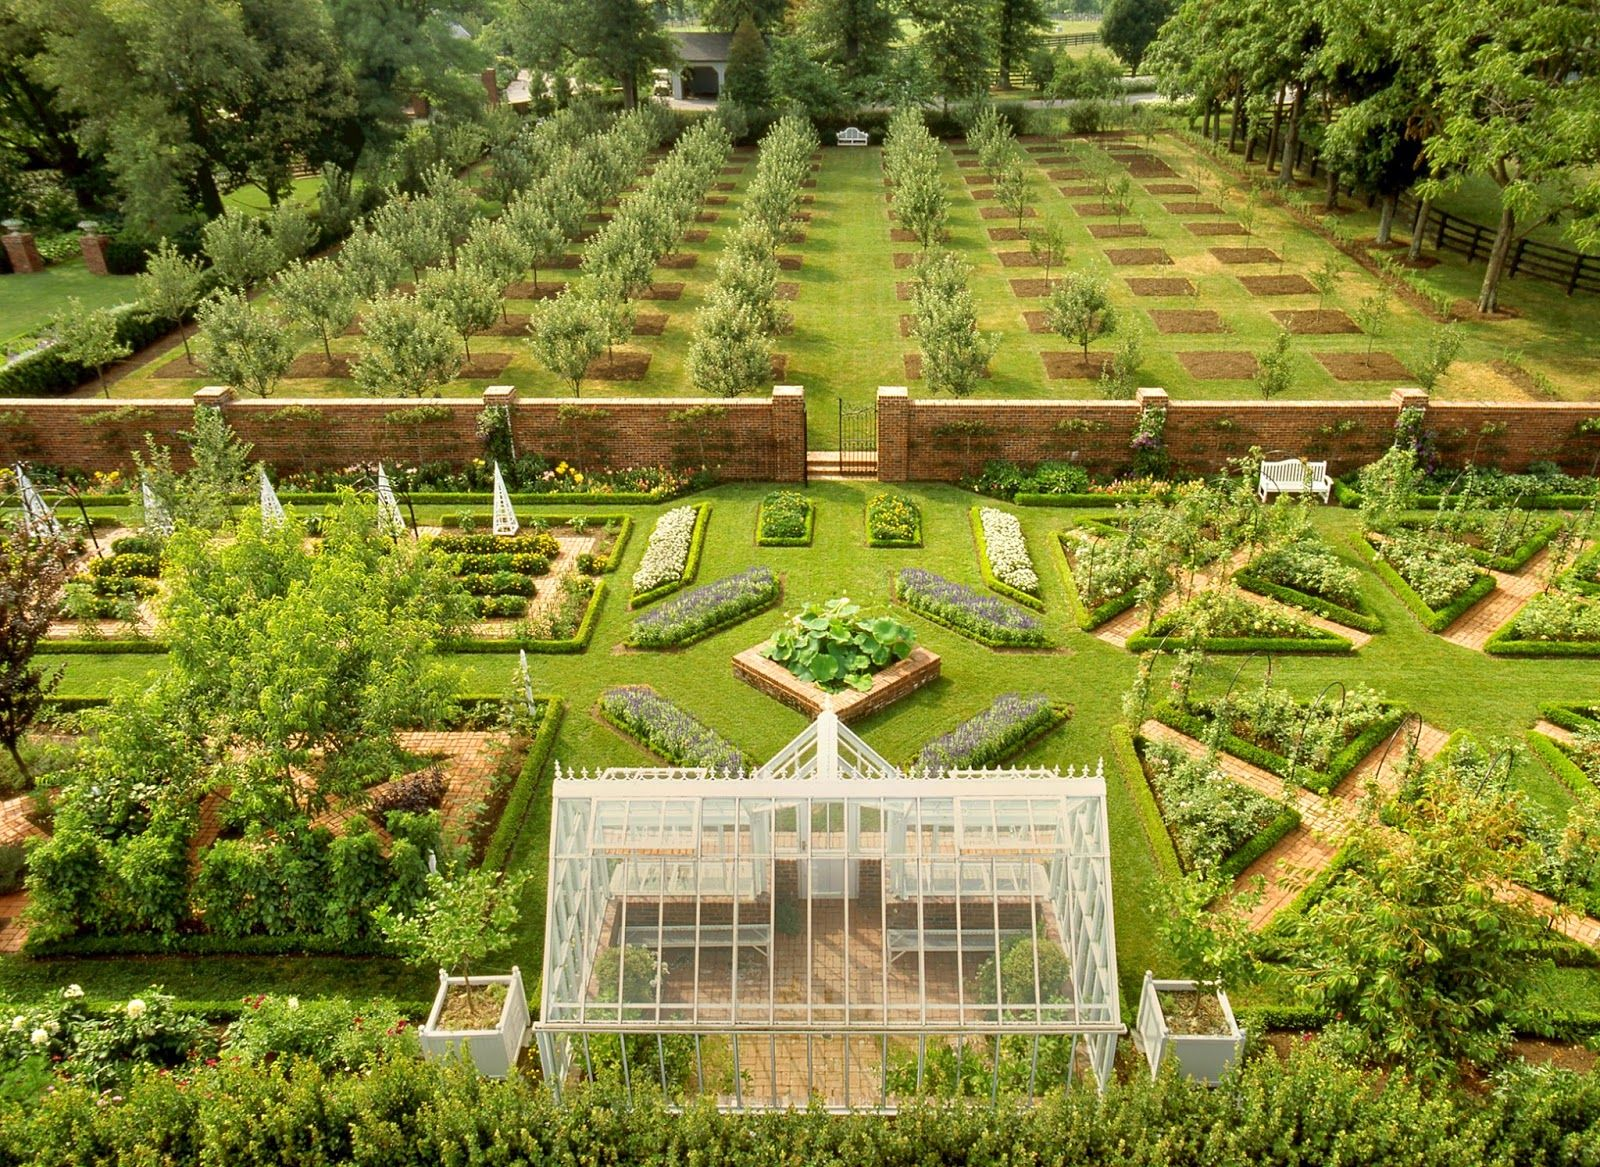 Hows this for a symmetrical garden? little augury: Pieter ...